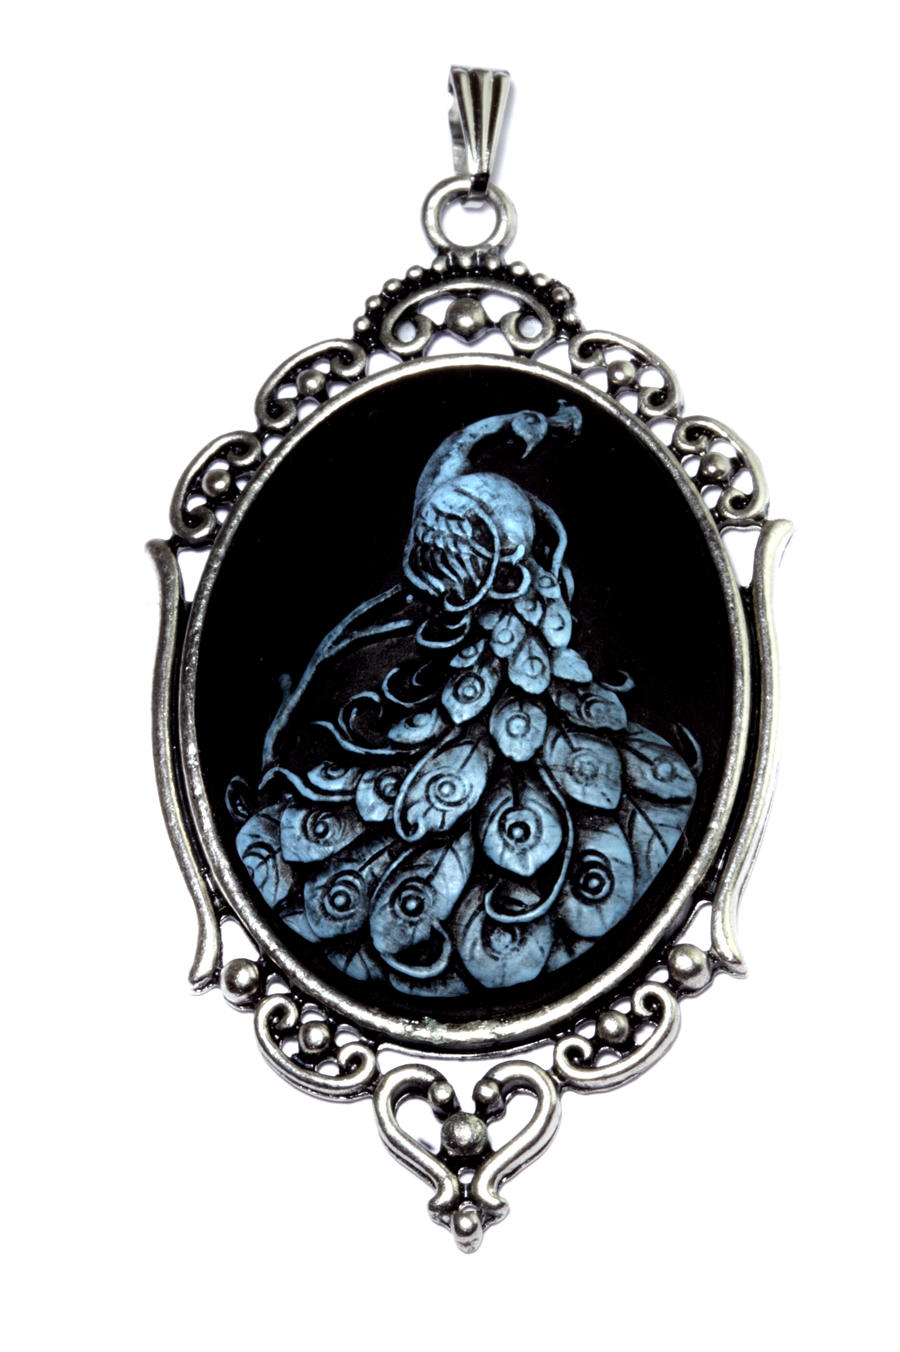 Neo victorian pendant blue peacock cameo by catherinetterings on catherinetterings neo victorian pendant blue peacock cameo by catherinetterings aloadofball Images